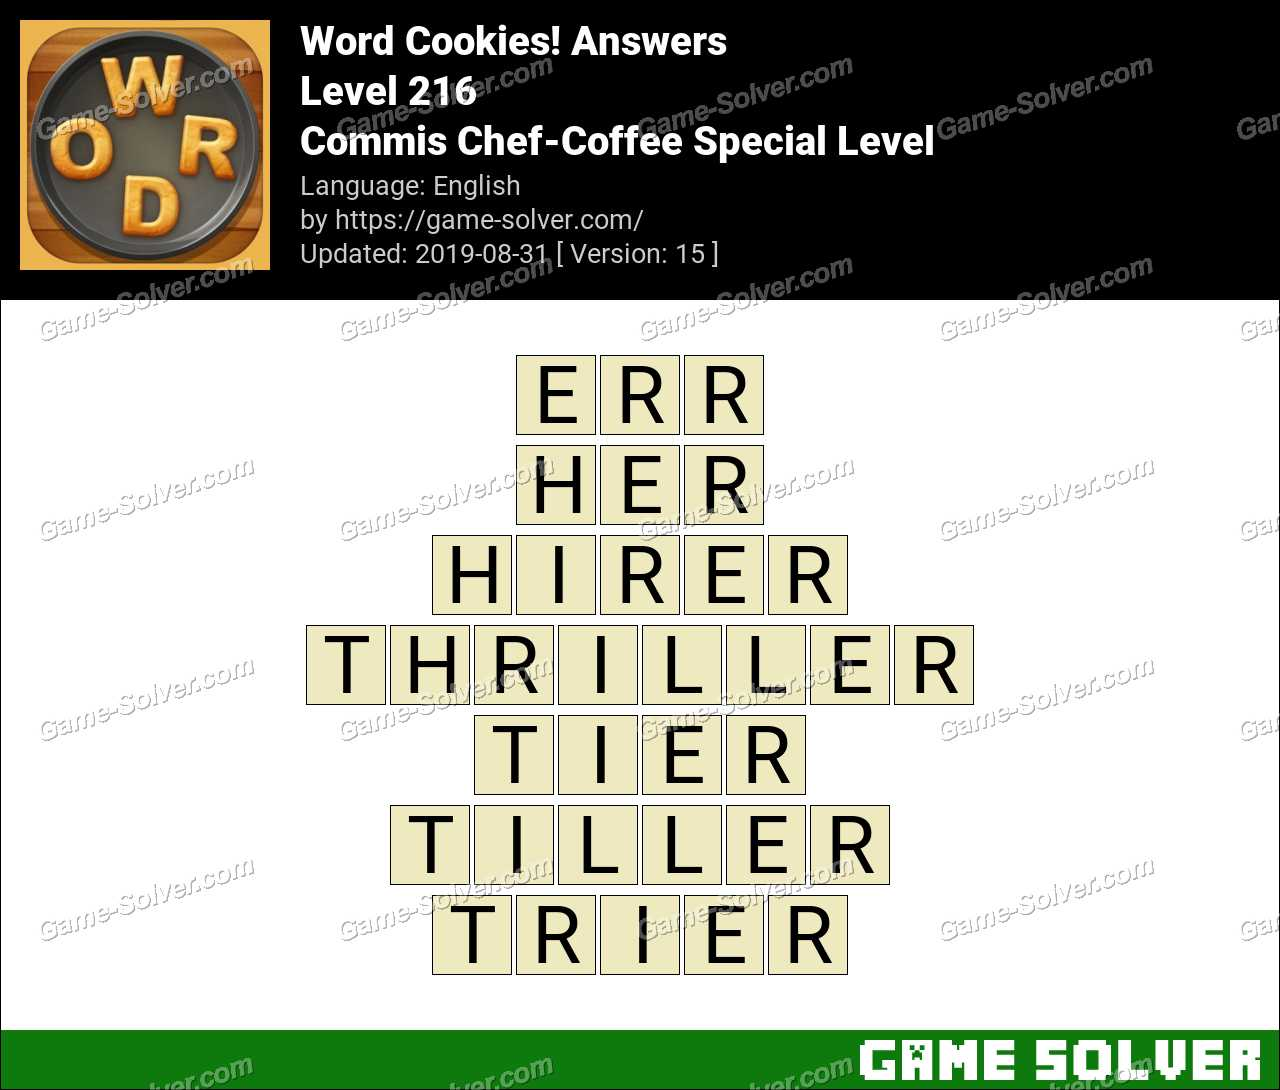 Word Cookies Commis Chef-Coffee Special Level Answers